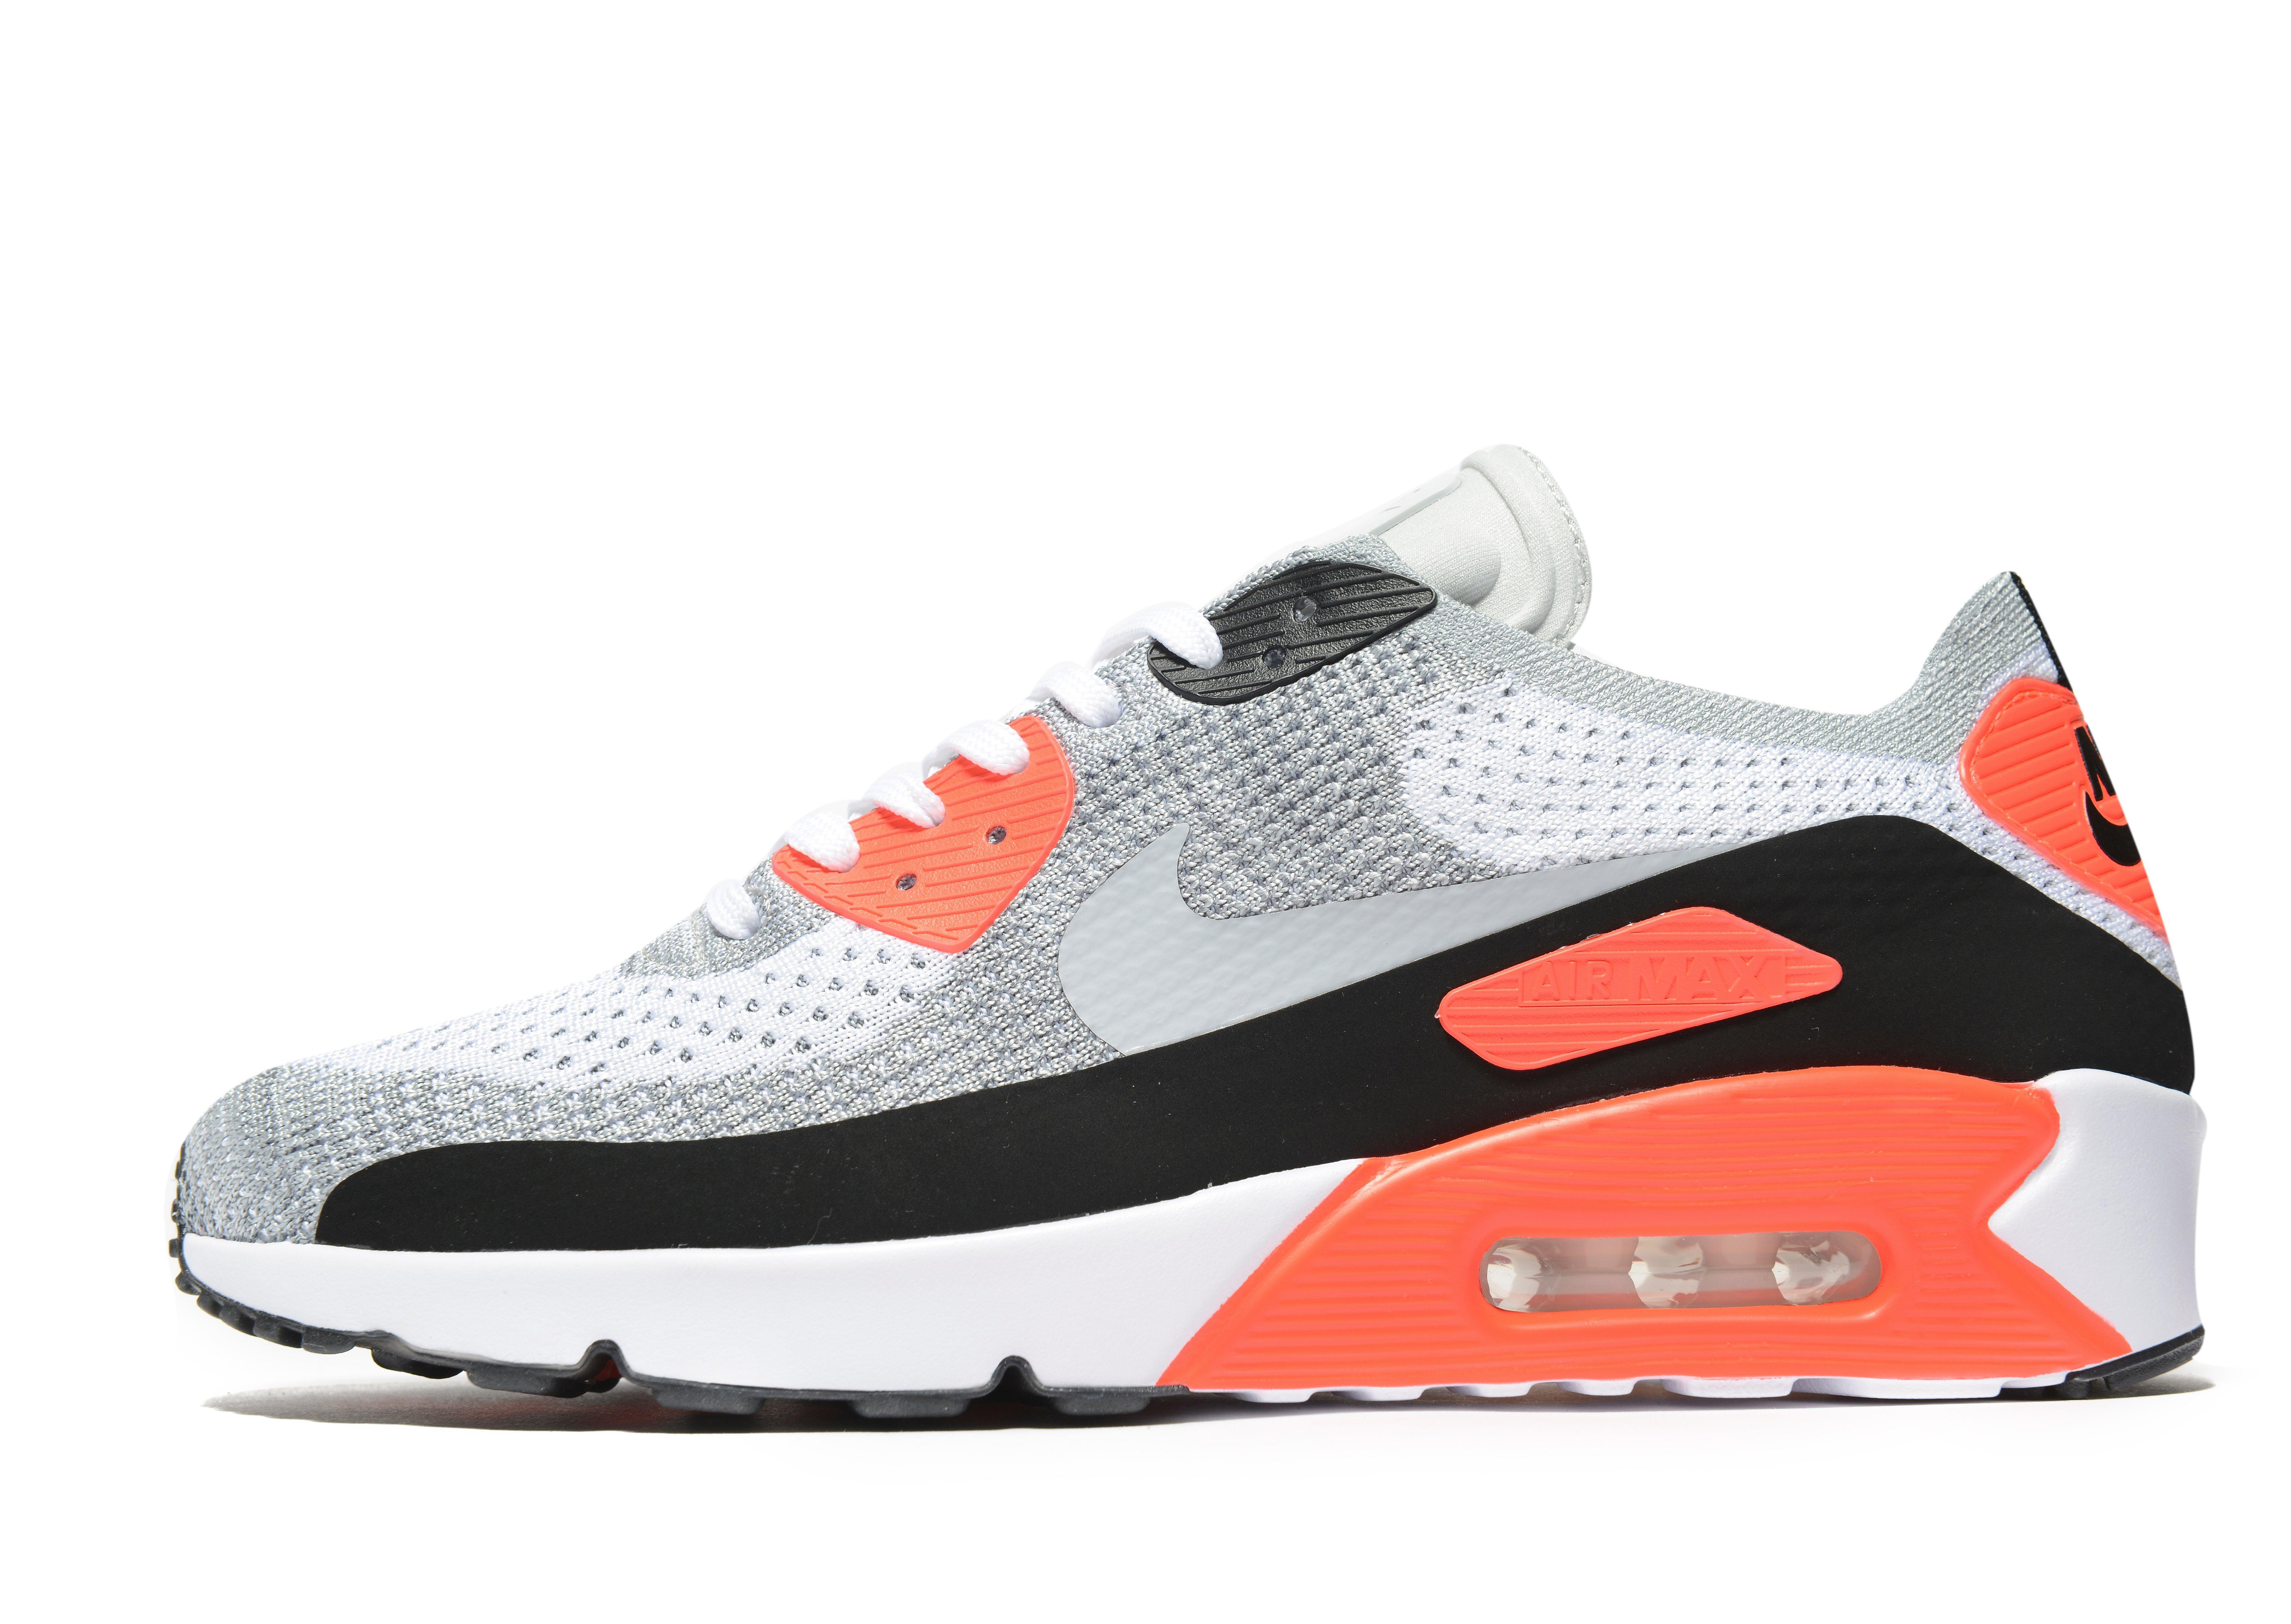 official photos 652c2 cfbe2 Lyst - Nike Air Max 90 Ultra 2.0 Flyknit in White for Men